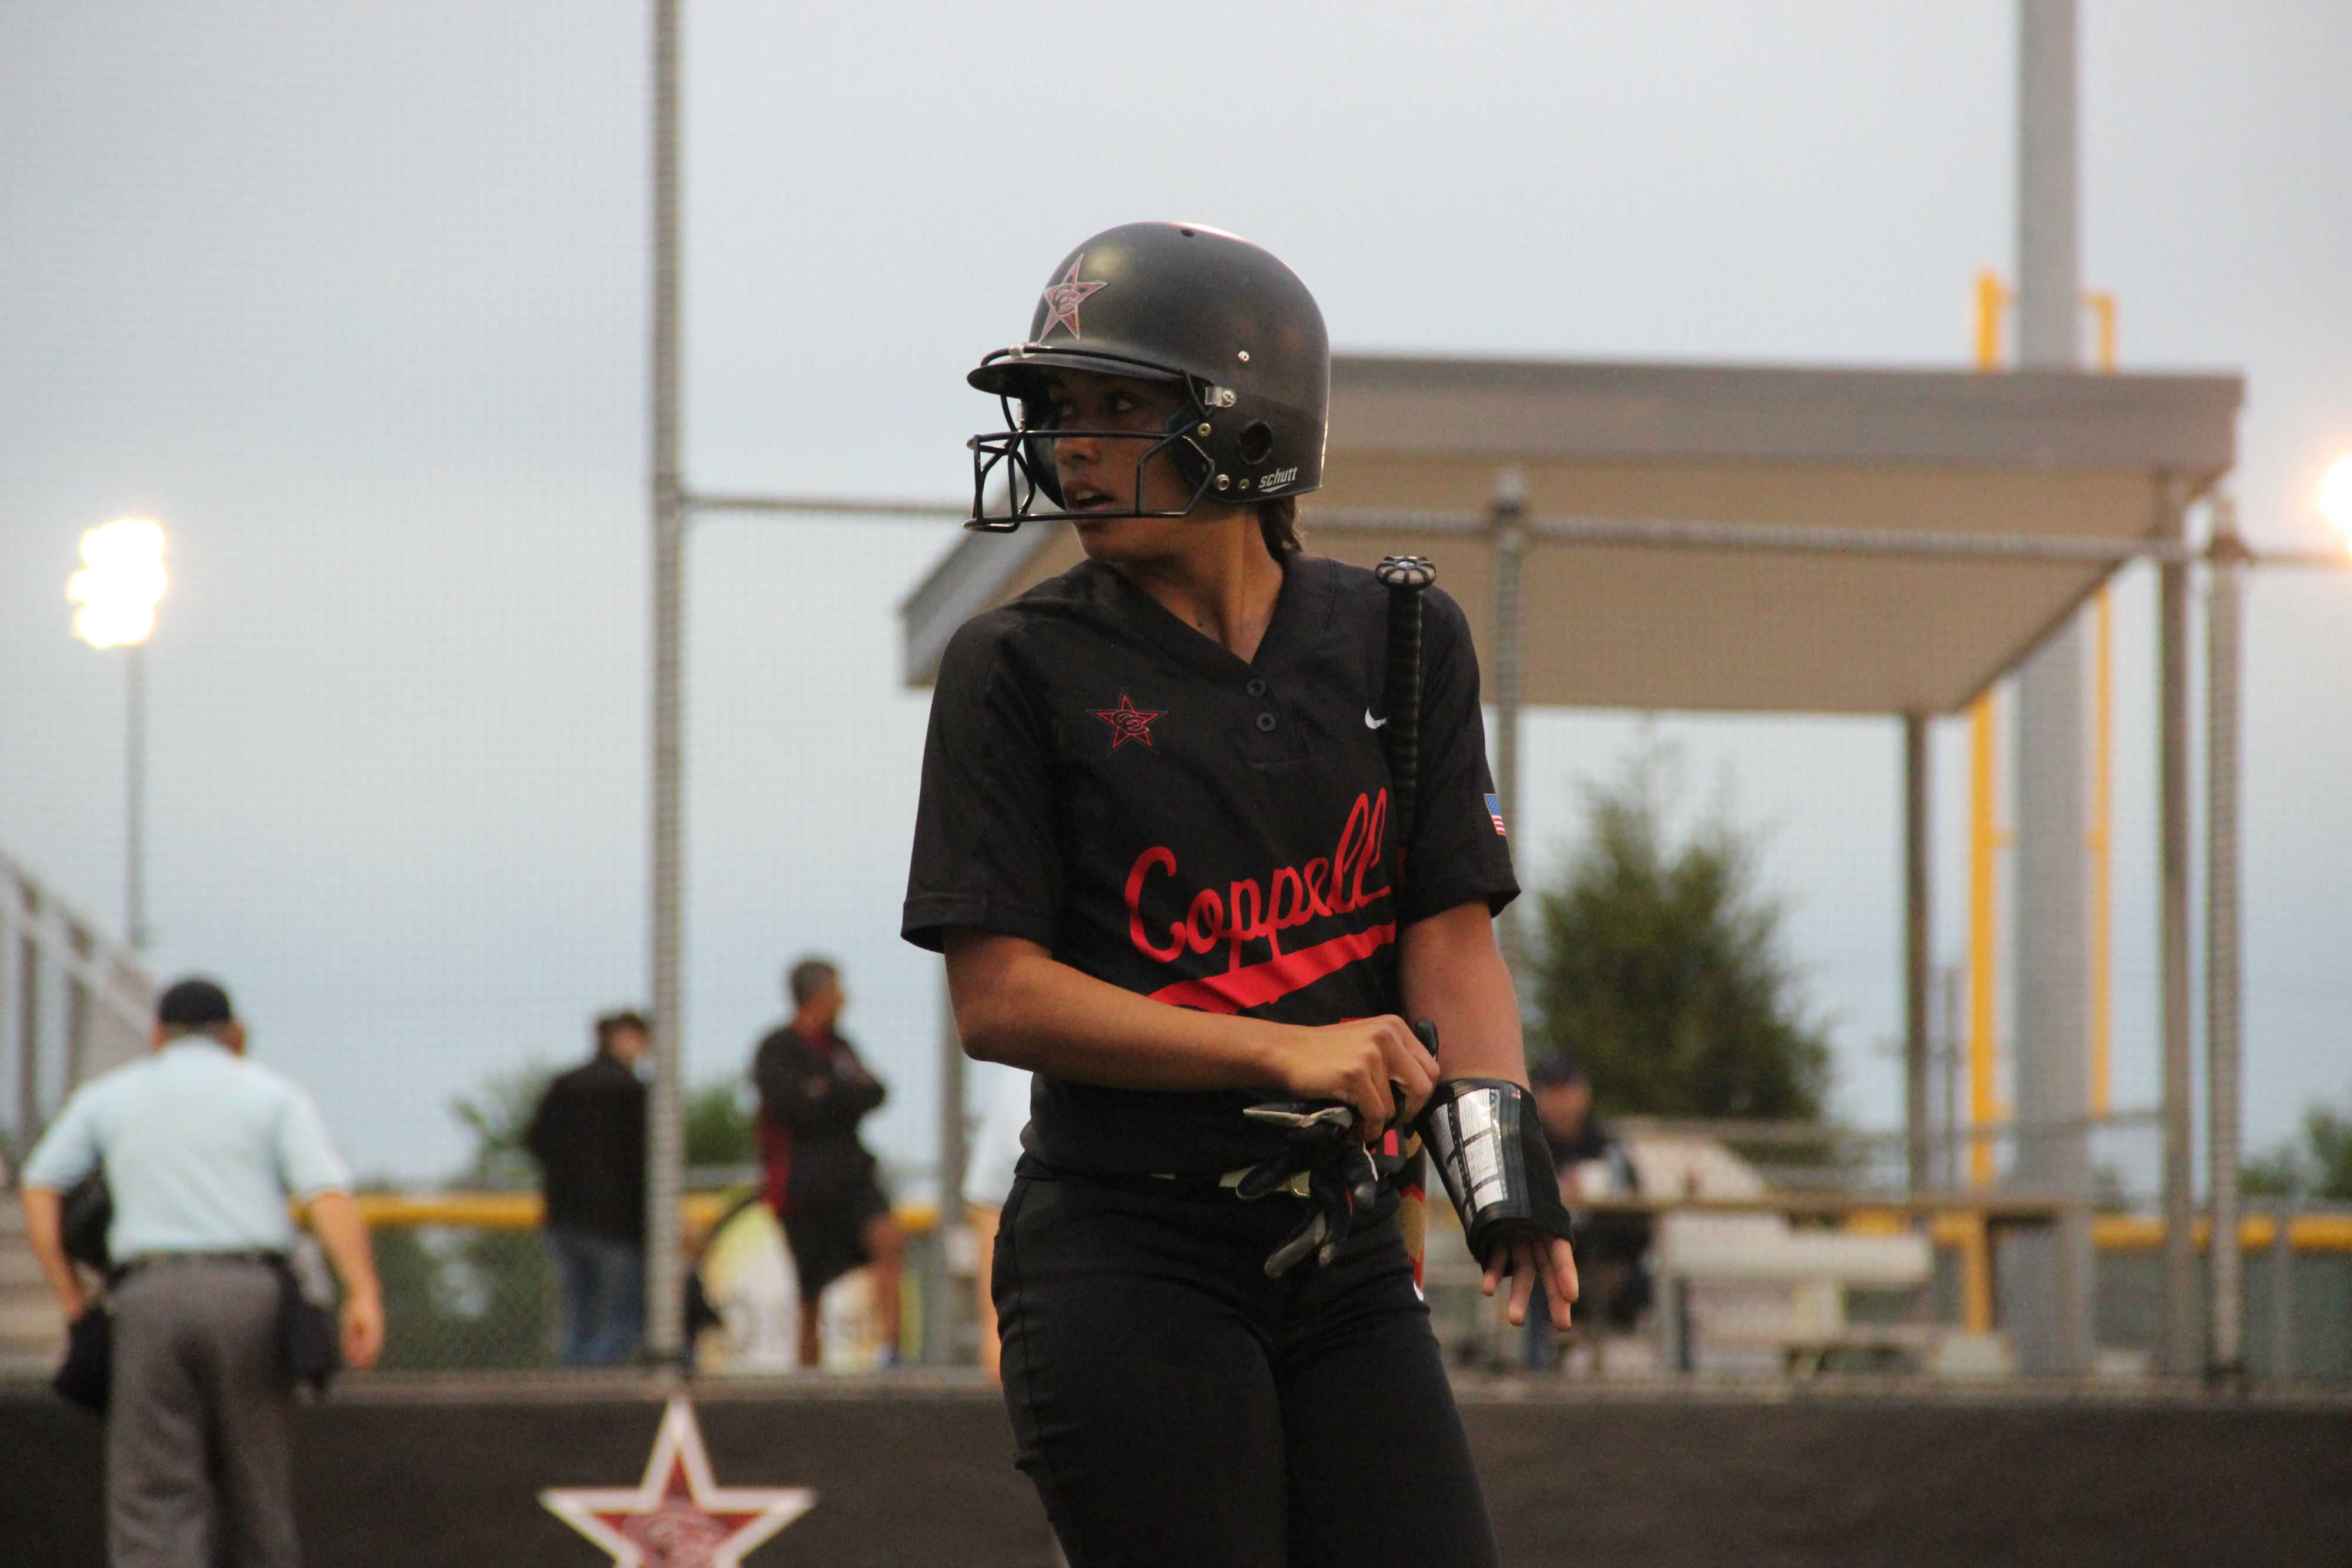 Senior rightfielder Julia Sircar prepares to get into the batter's box to hit in the first inning. The Cowgirls would fall to Richland 13-11.